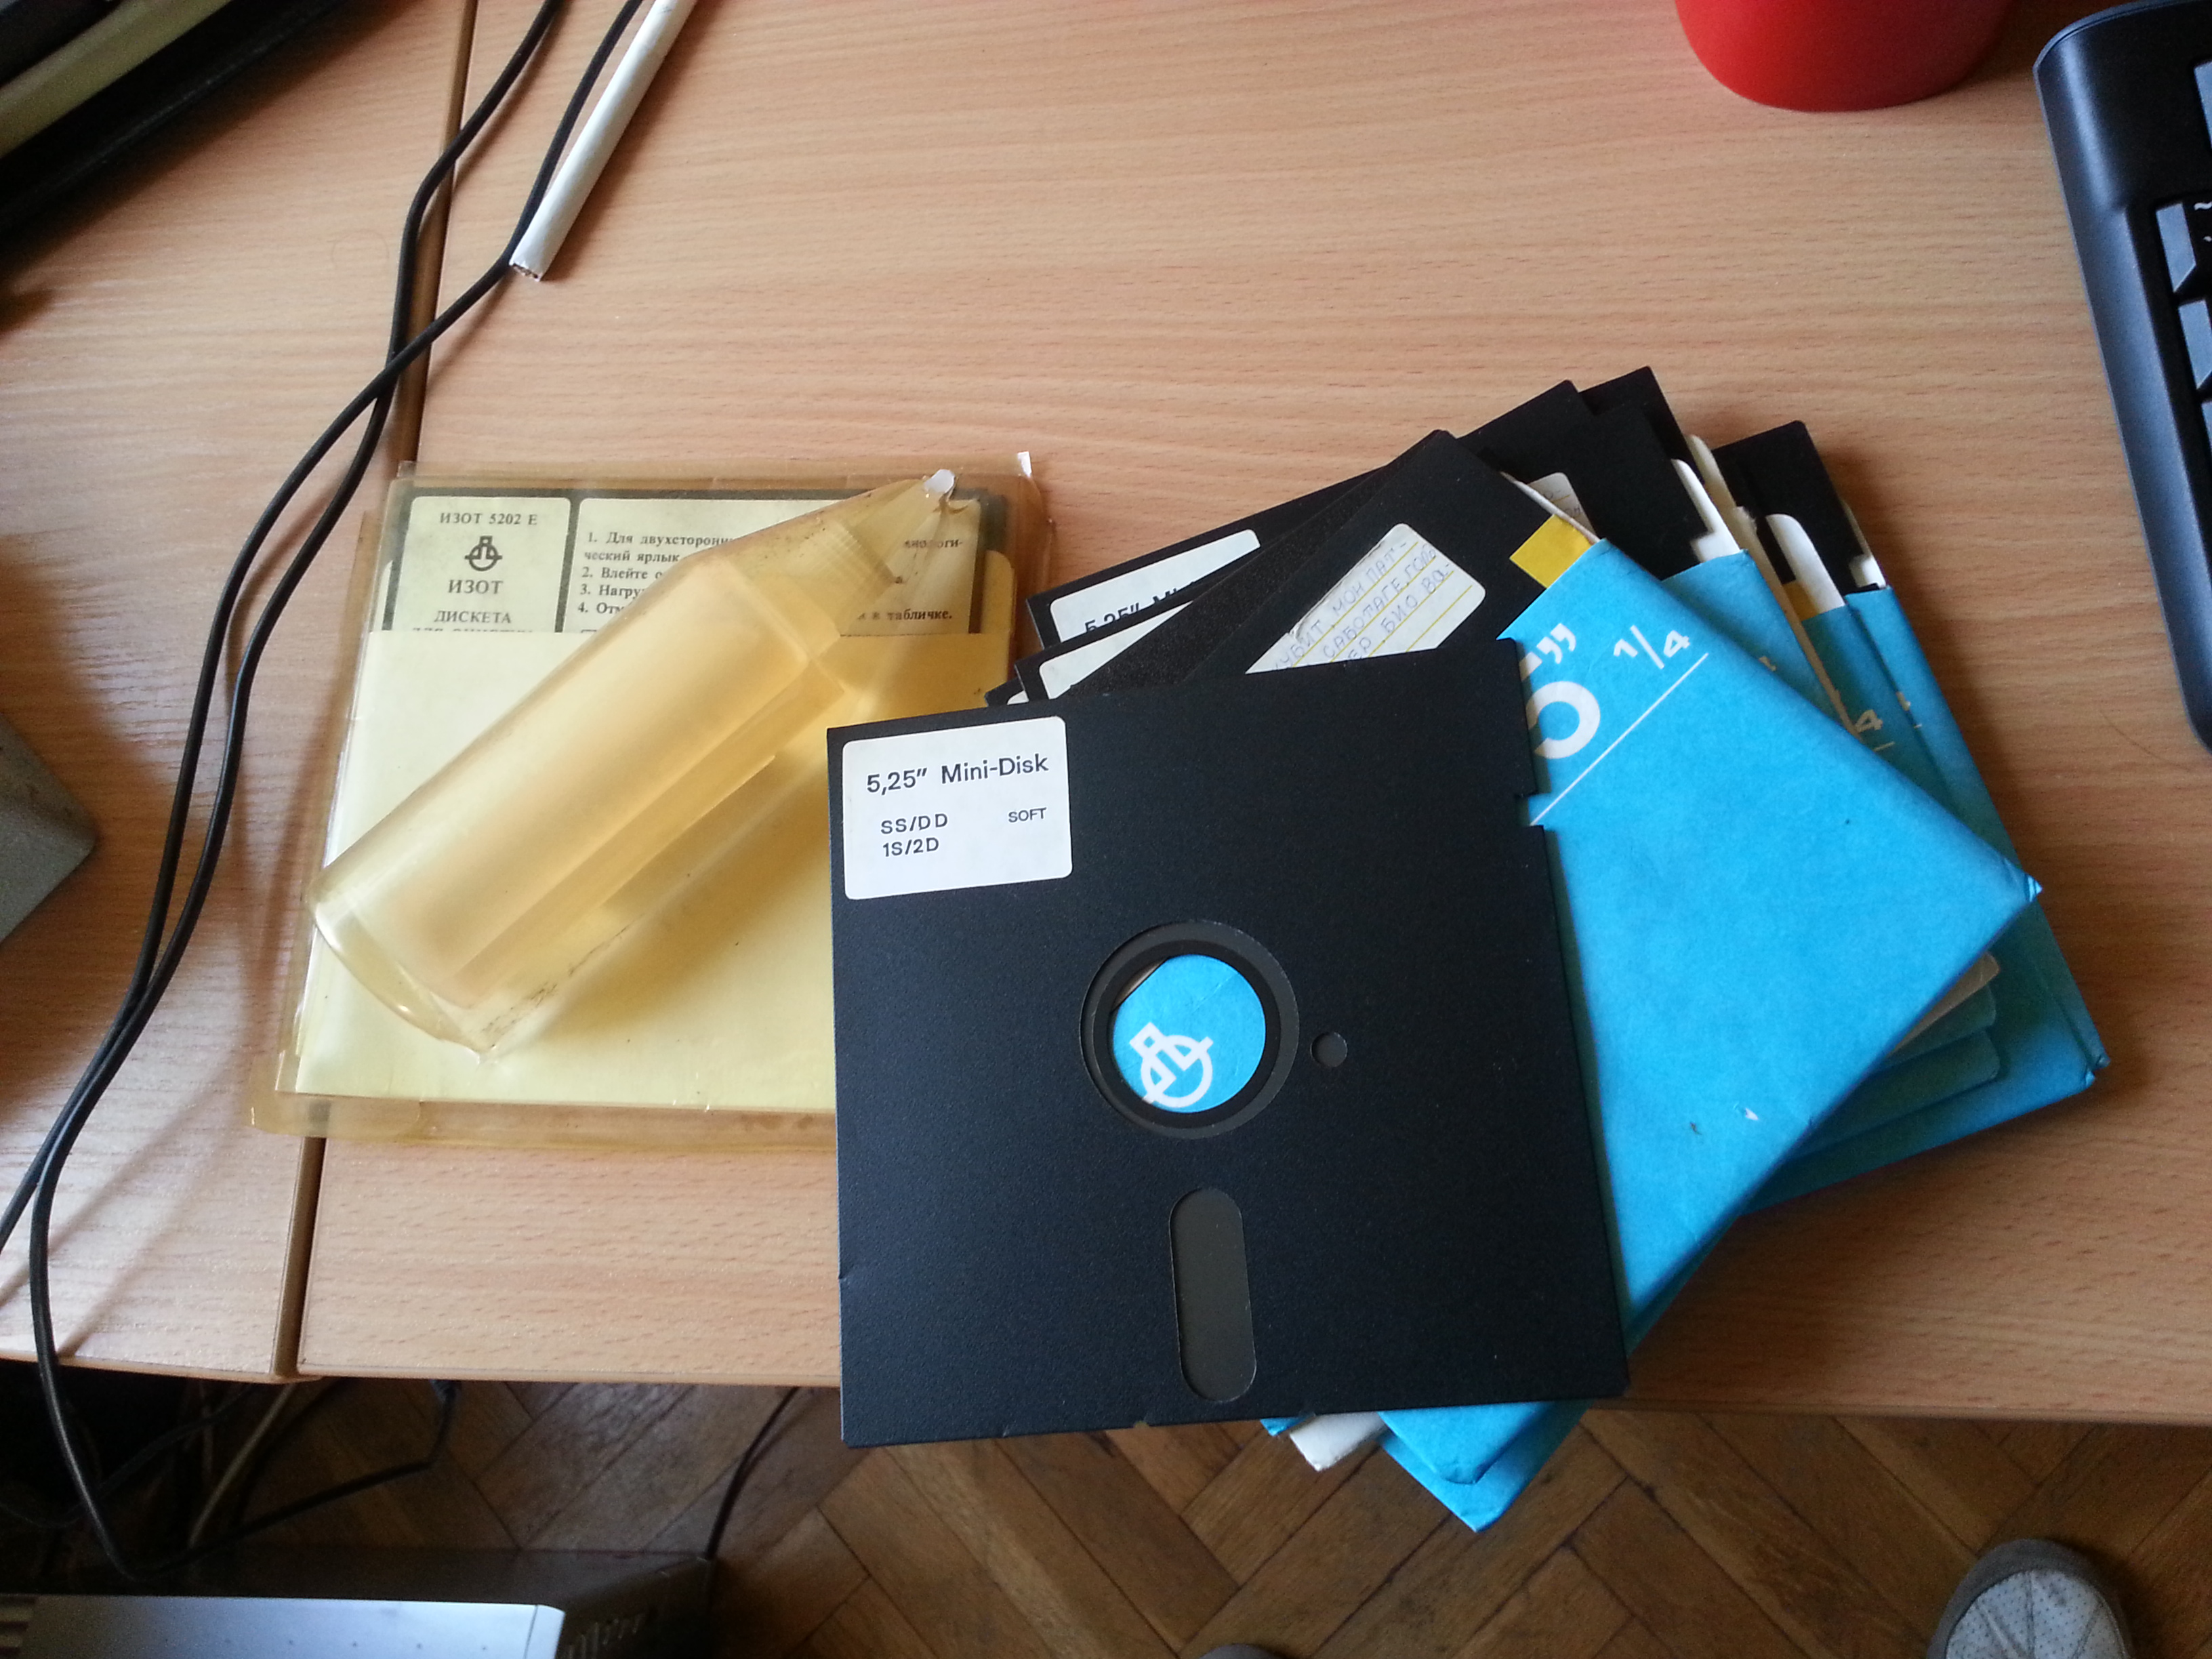 Diskettes for the Pravetz